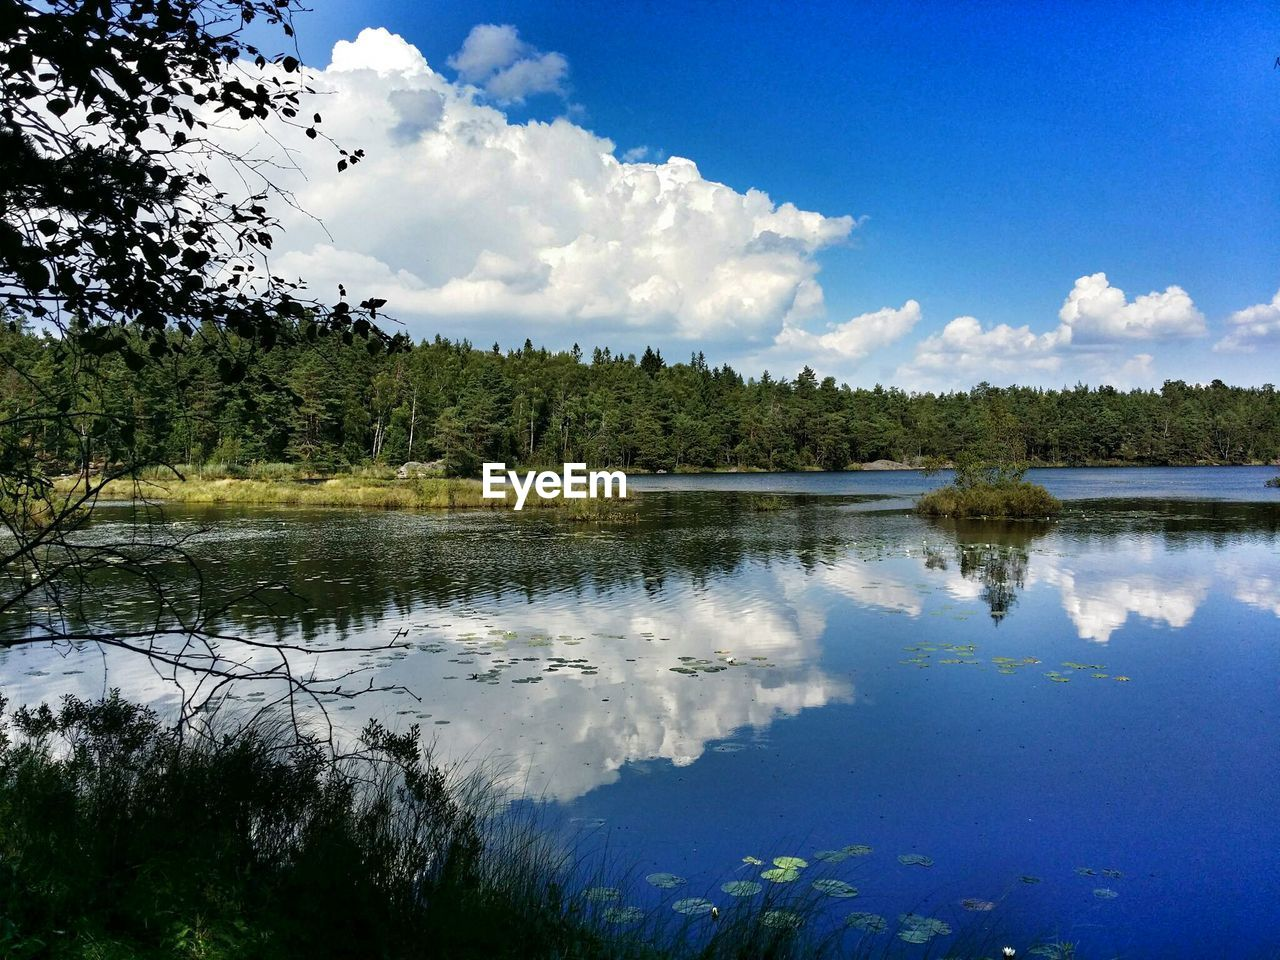 Scenic view of landscape with lake